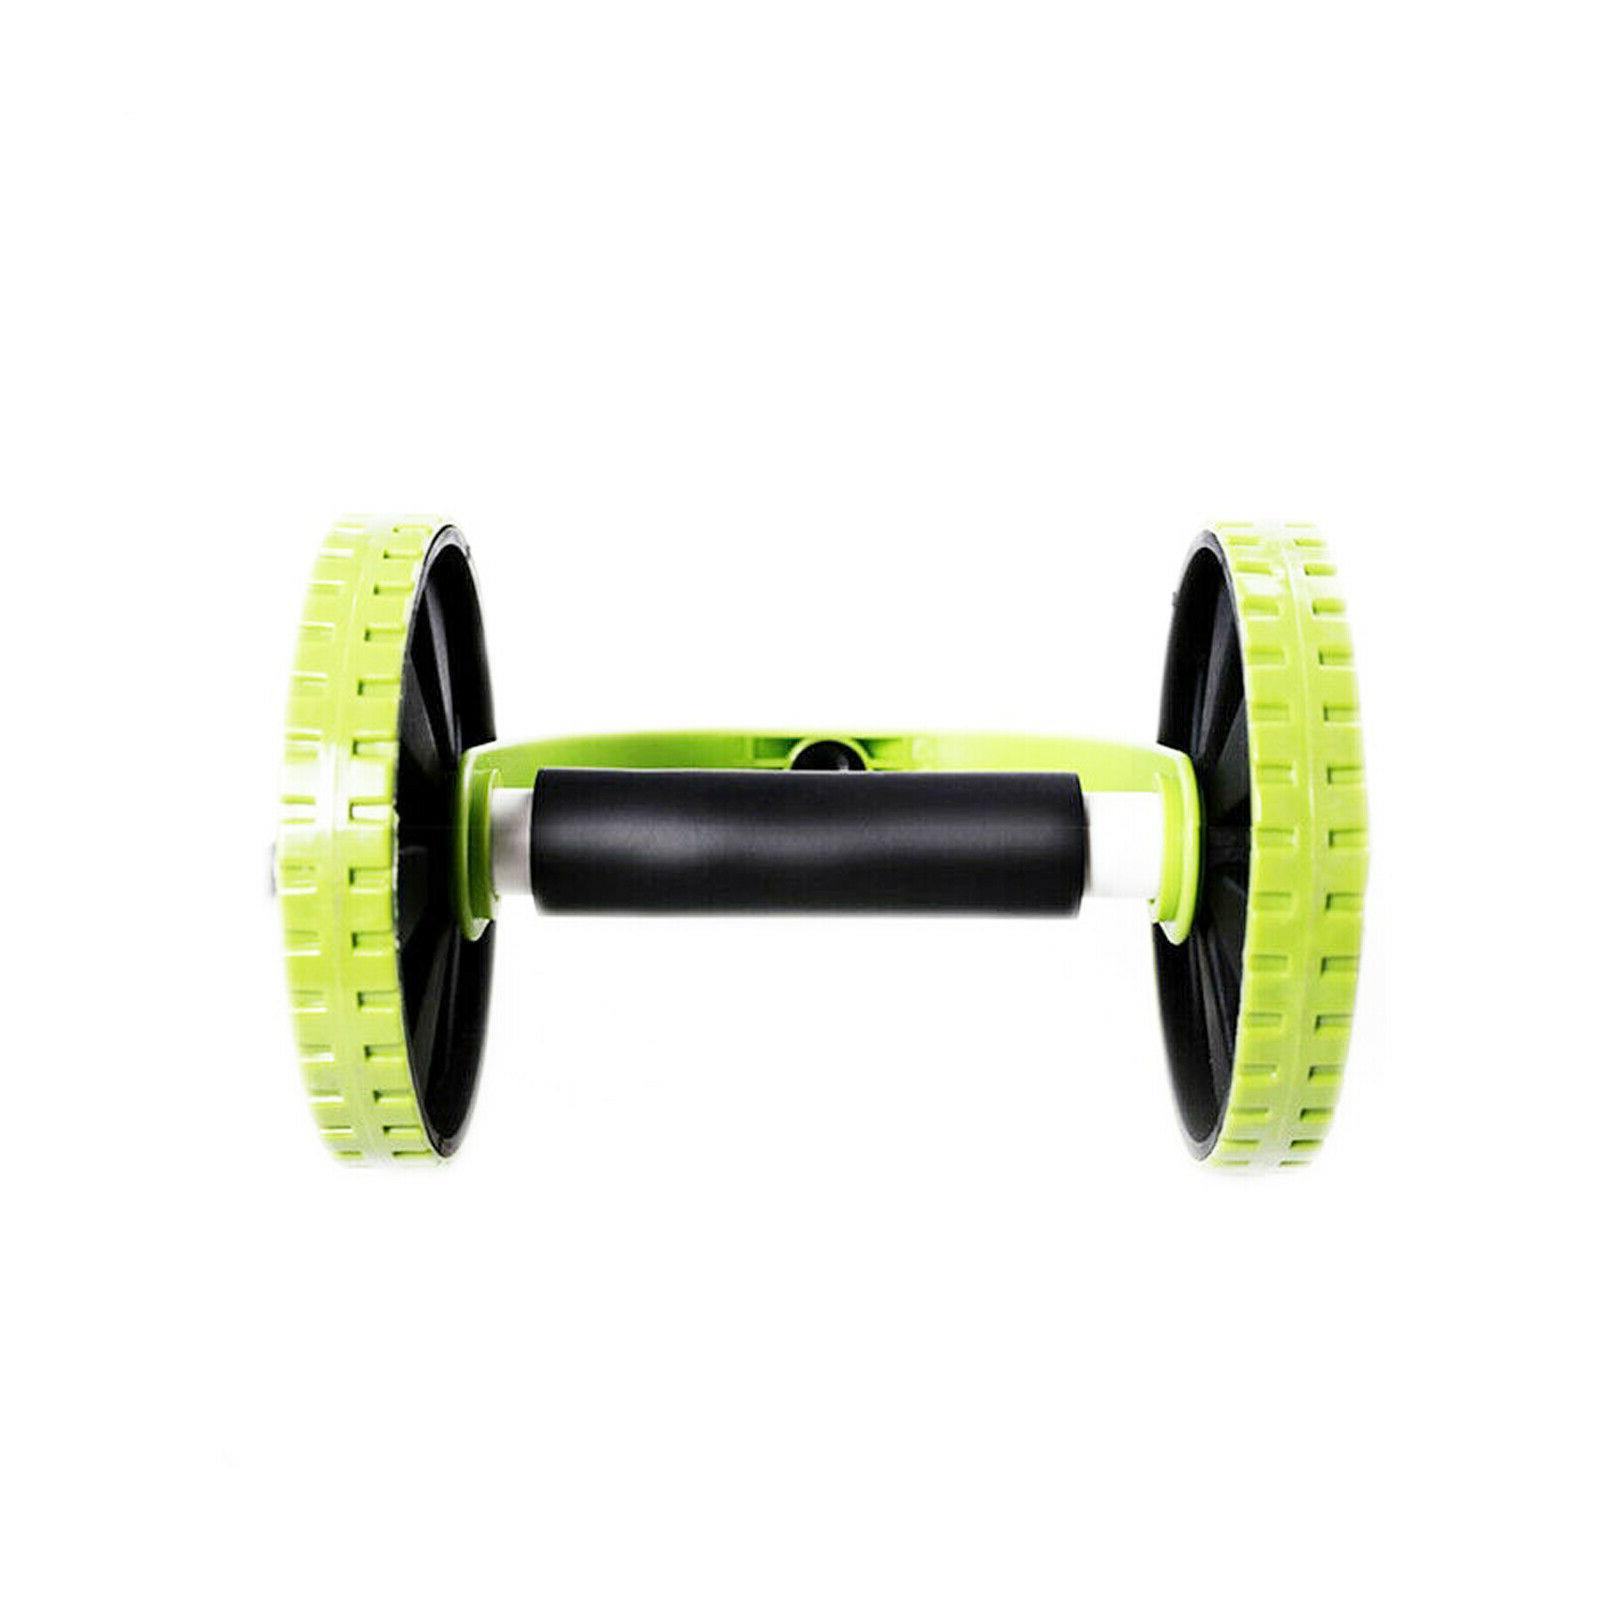 Home Gym Abs Equipment Exercise Body Training